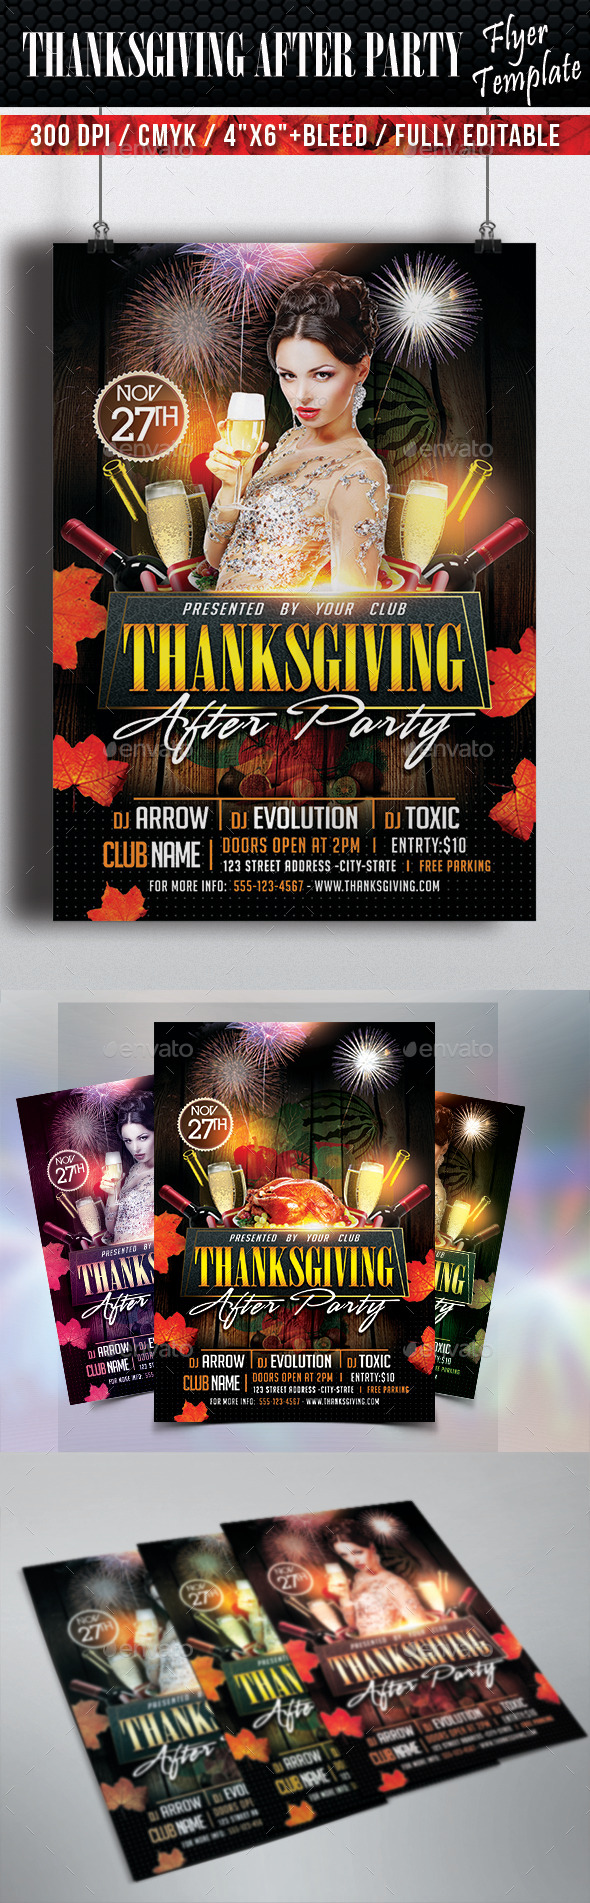 Thanksgiving After Party Flyer Template - Clubs & Parties Events